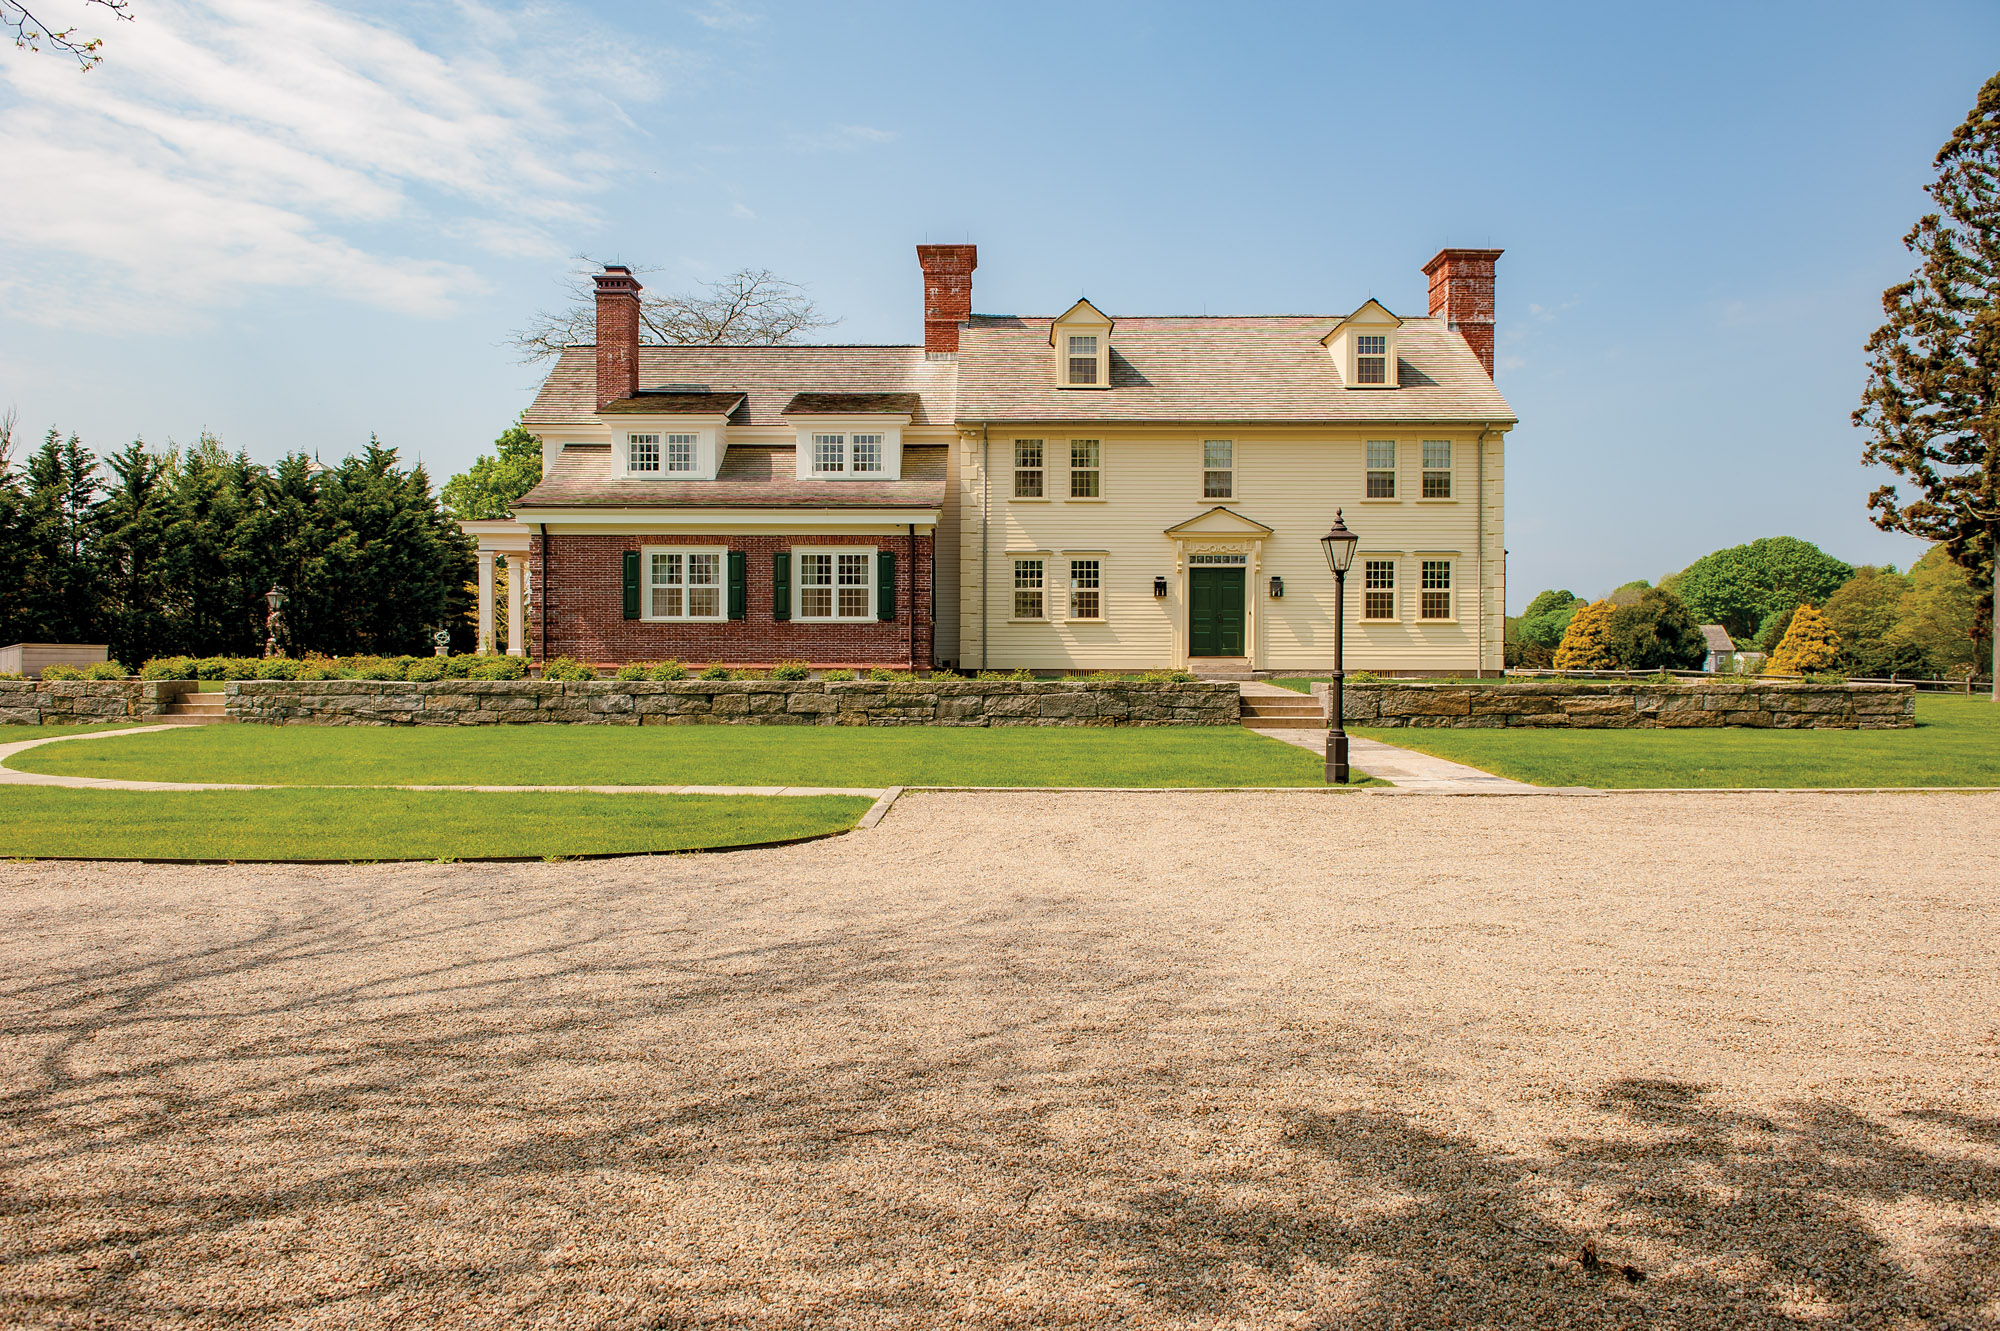 A brick-front addition joined the restored 18th-century Pendleton house in Rhode Island.